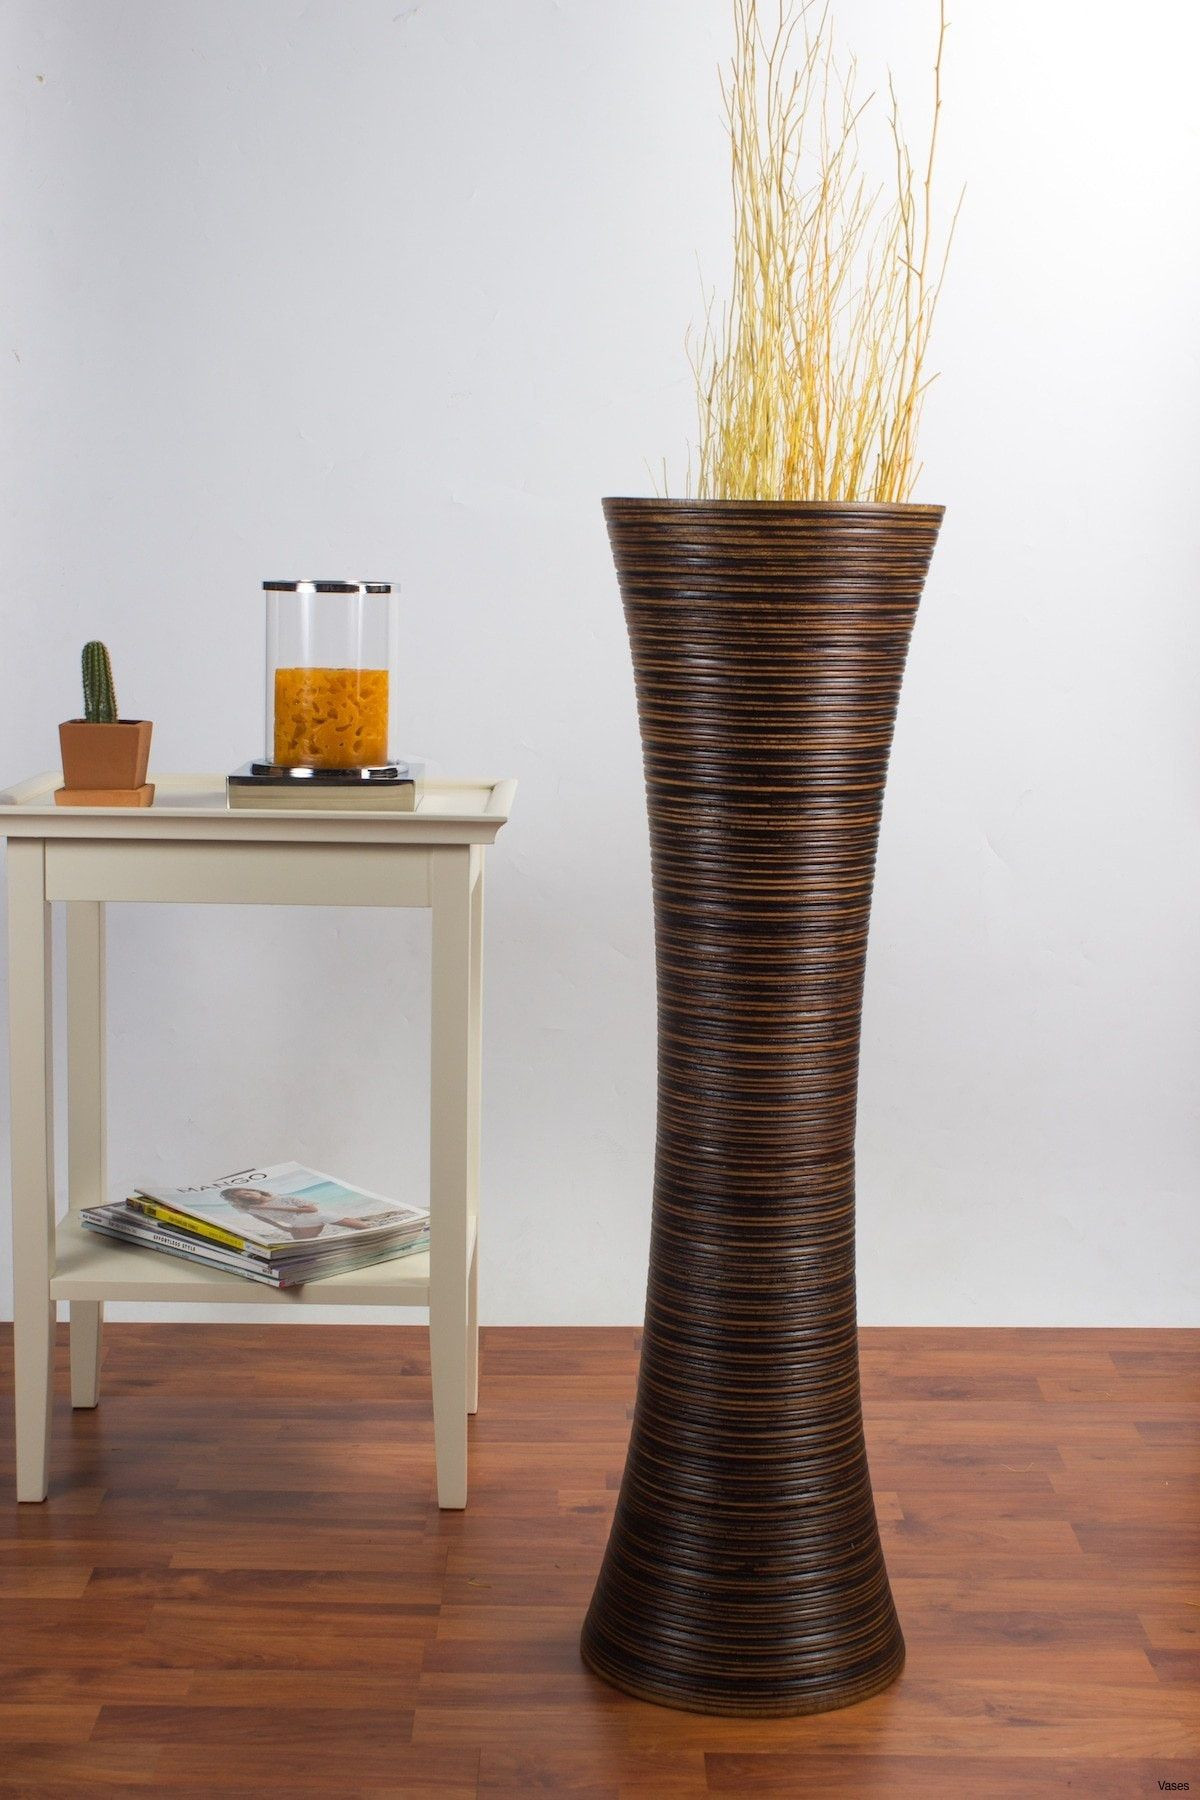 wooden vases and bowls of tall decorative vases luxury decorative floor vases fresh d dkbrw regarding tall decorative vases luxury decorative floor vases fresh d dkbrw 5749 1h vases tall brown i